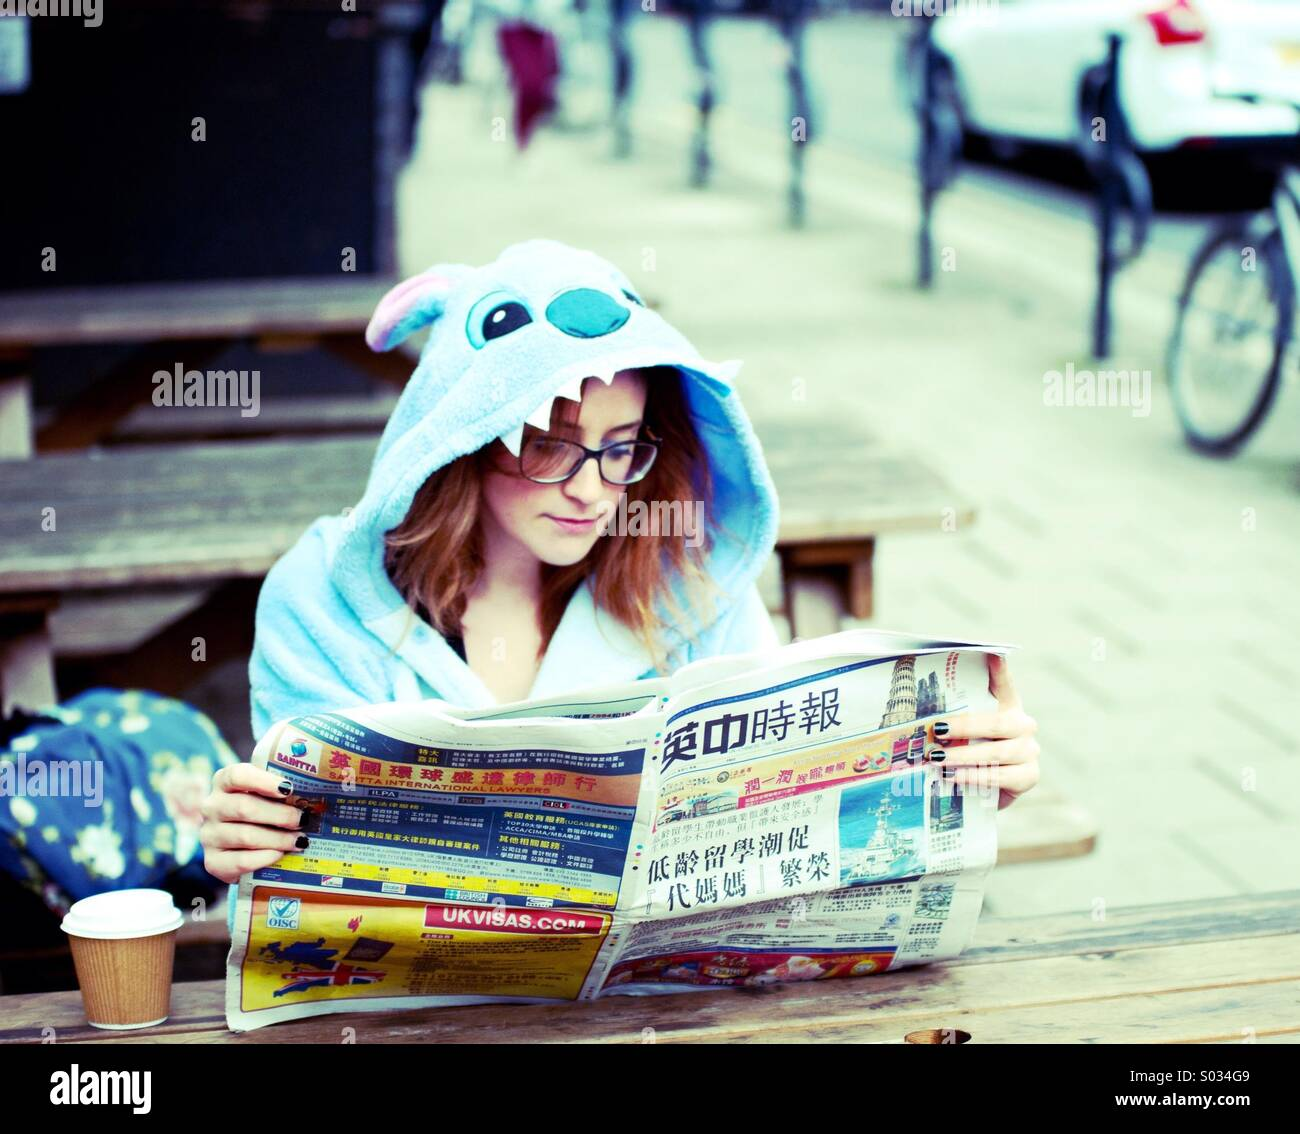 Woman in Stitch costume reading a Chinese newspaper - Stock Image